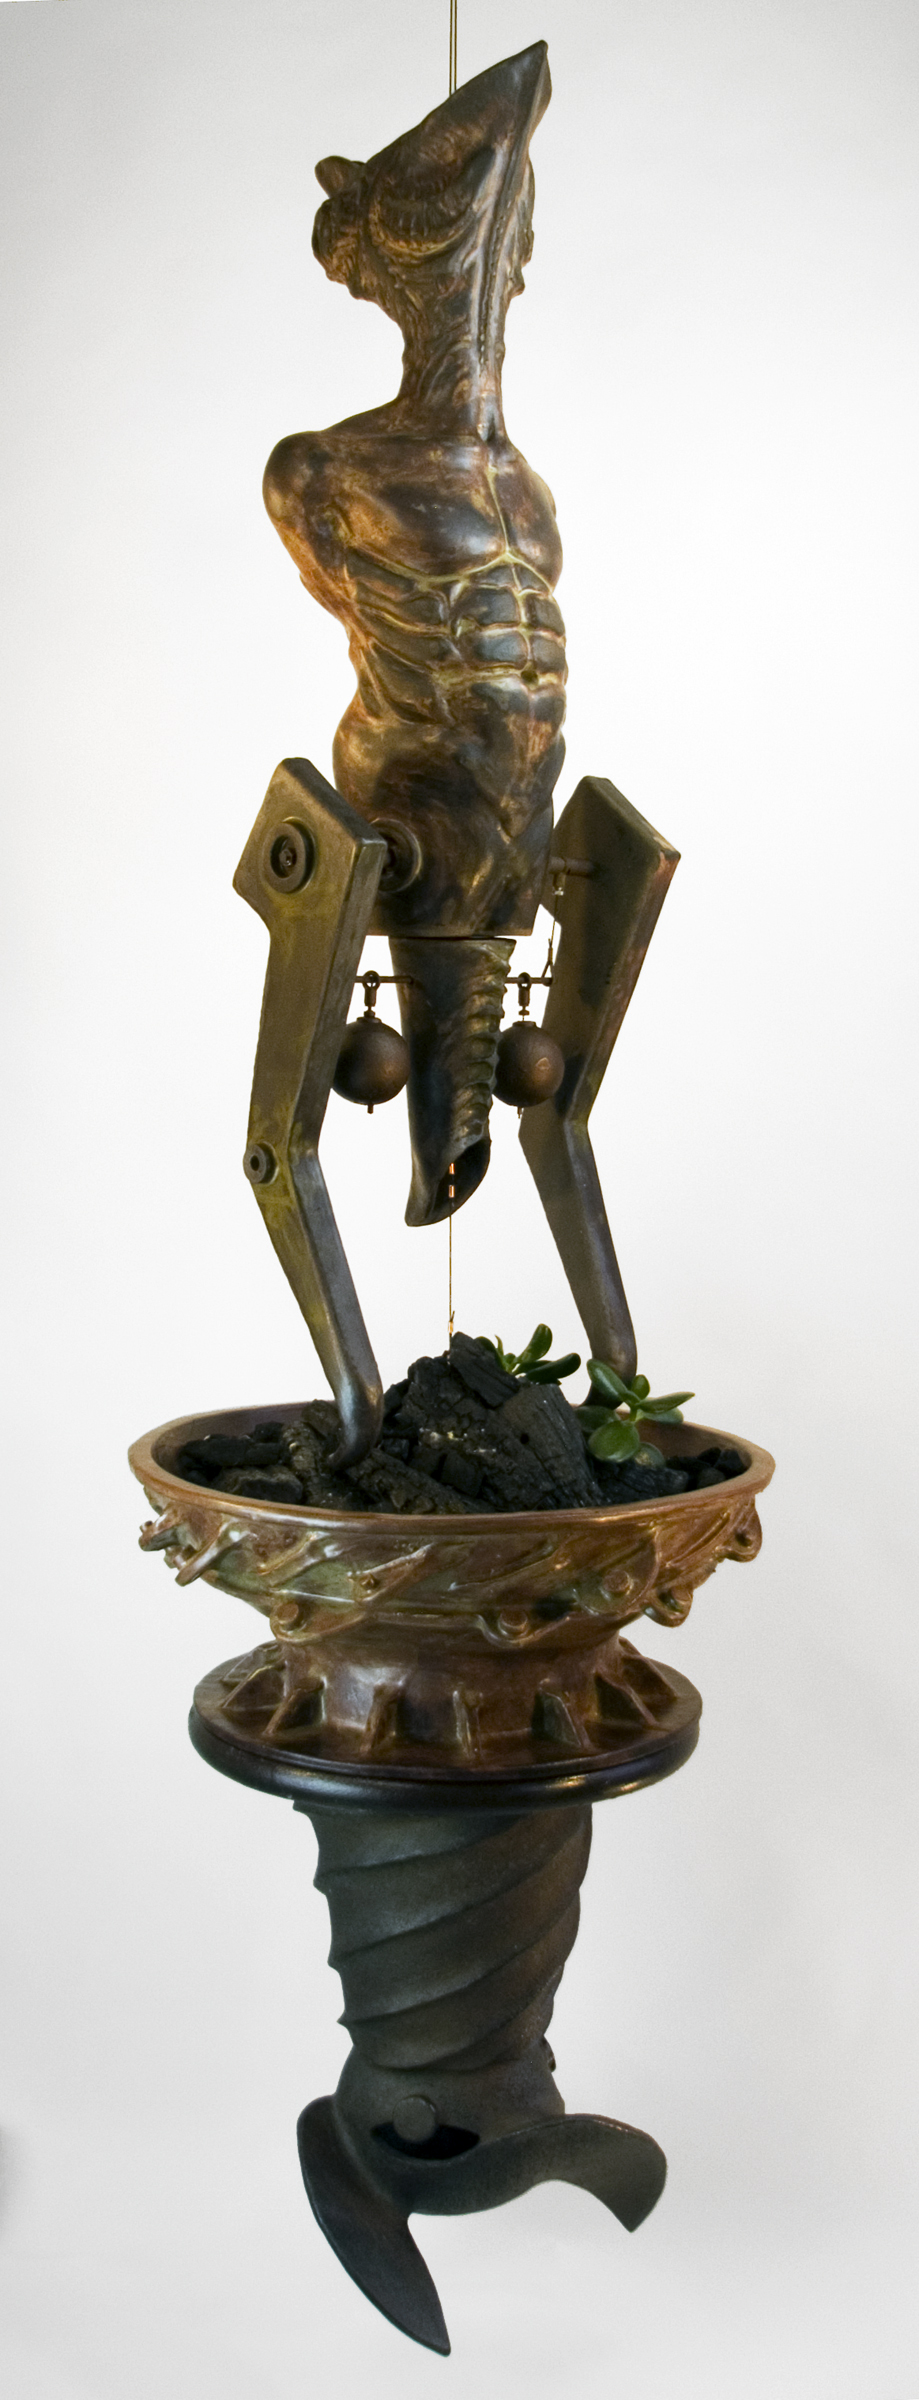 sculpture, environment, steel, clay, organic